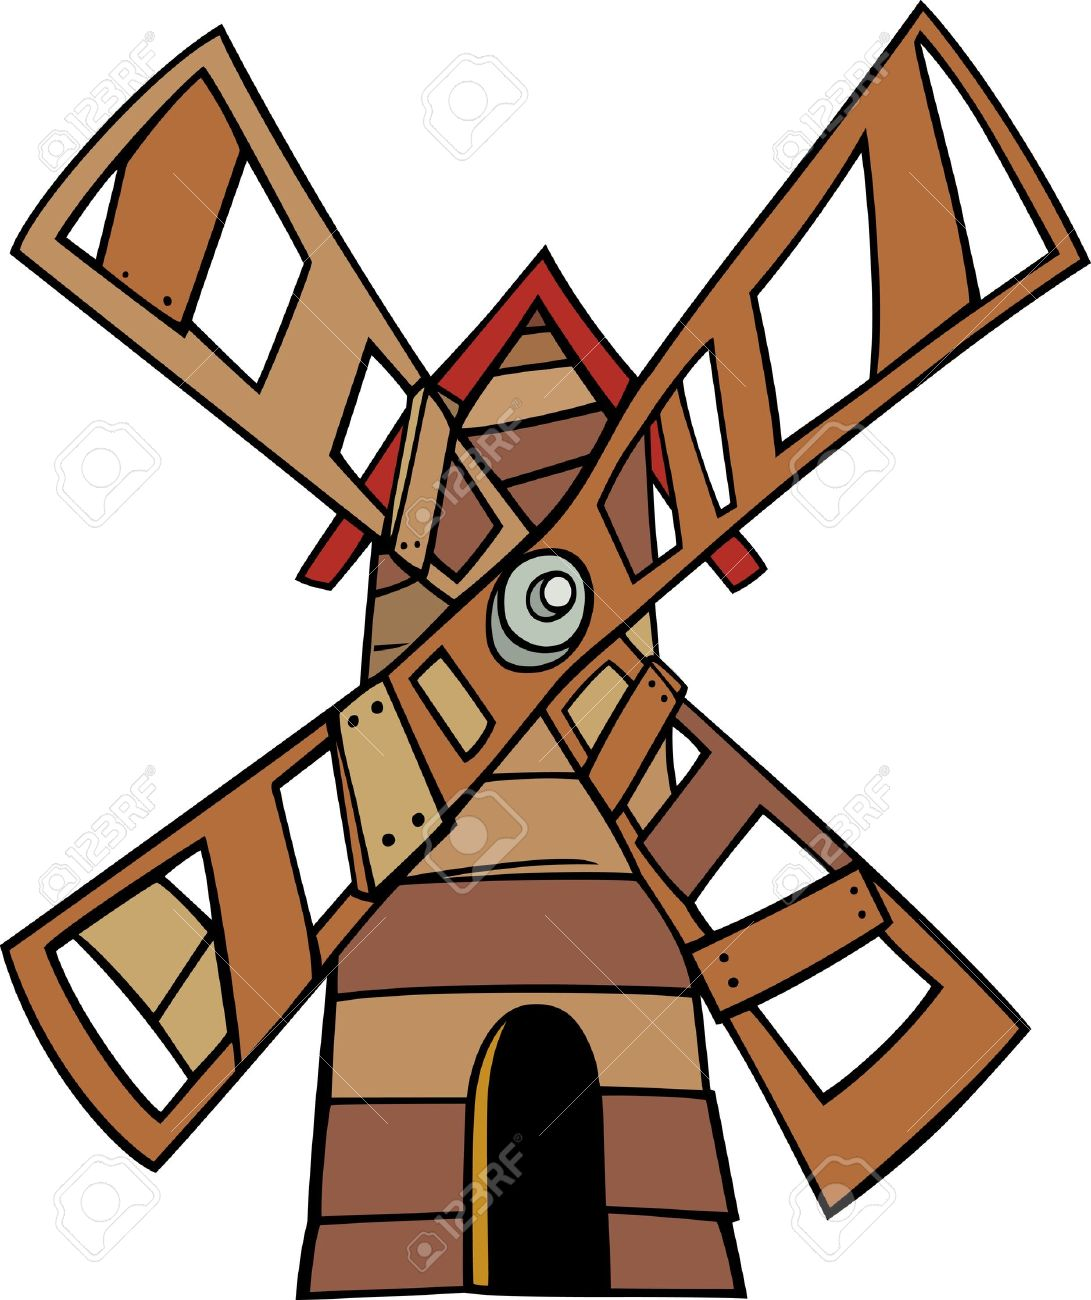 Clip Art Windmill Clipart cartoon illustration of wooden windmill clip art royalty free stock vector 21435357